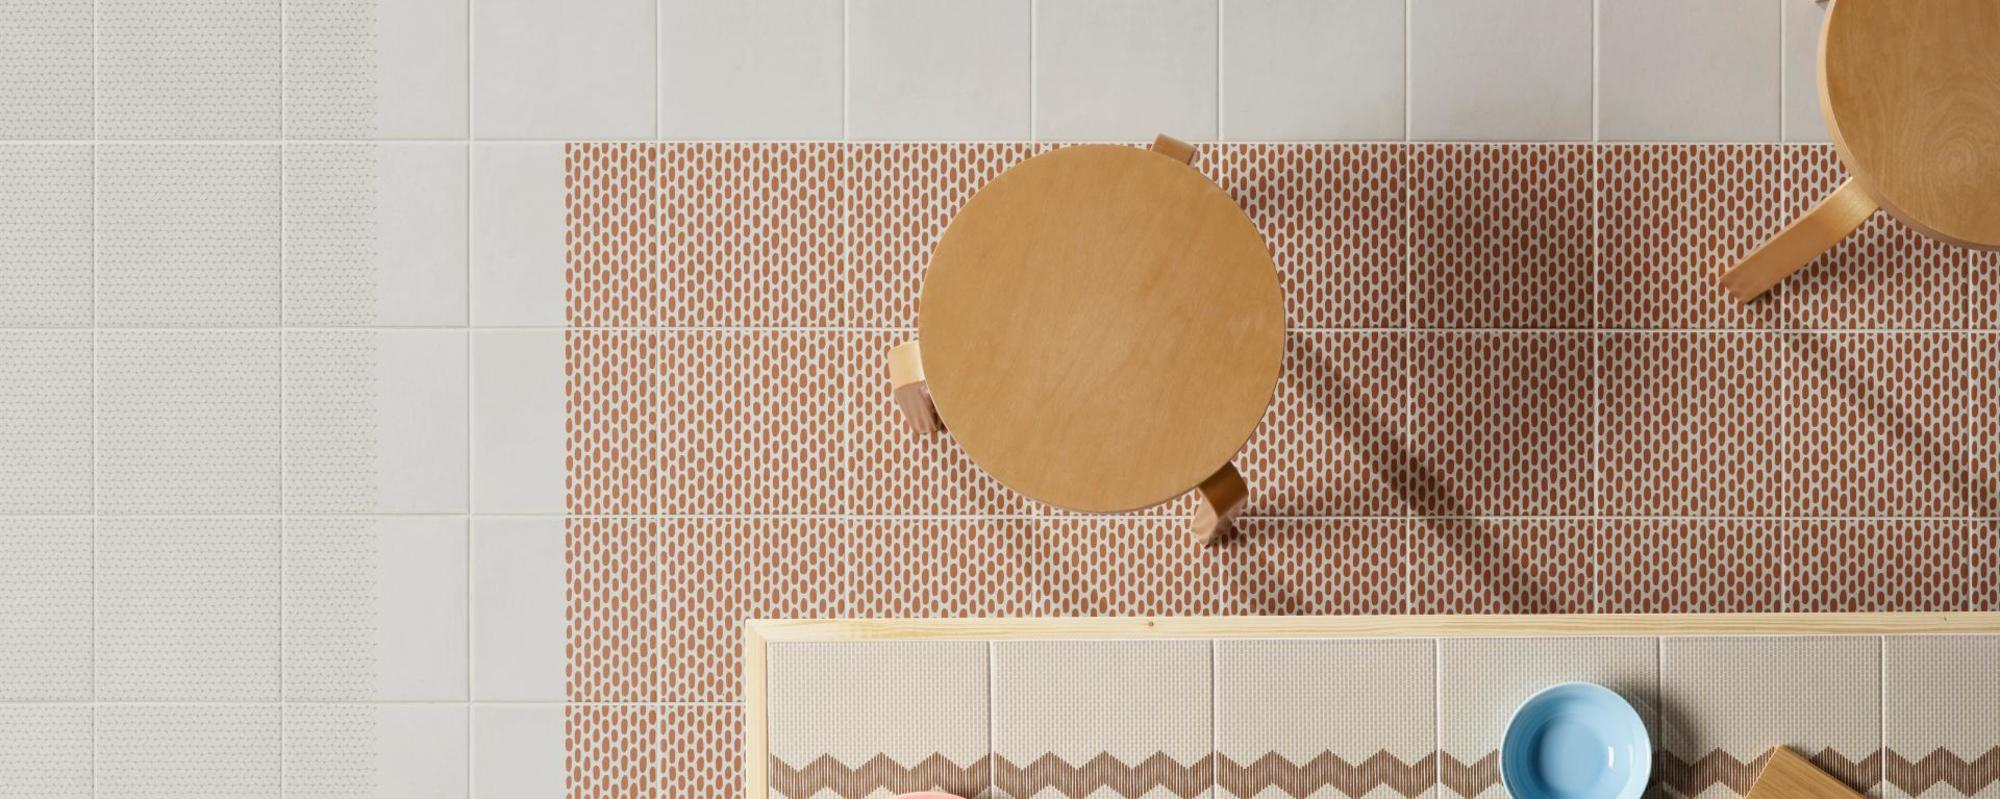 MUTINA ceramiche & design Tape Raw Edges base white + mesh brown + mesh half brown + cobble half brown + cobble brown + zigzag half brown + zigzag brown